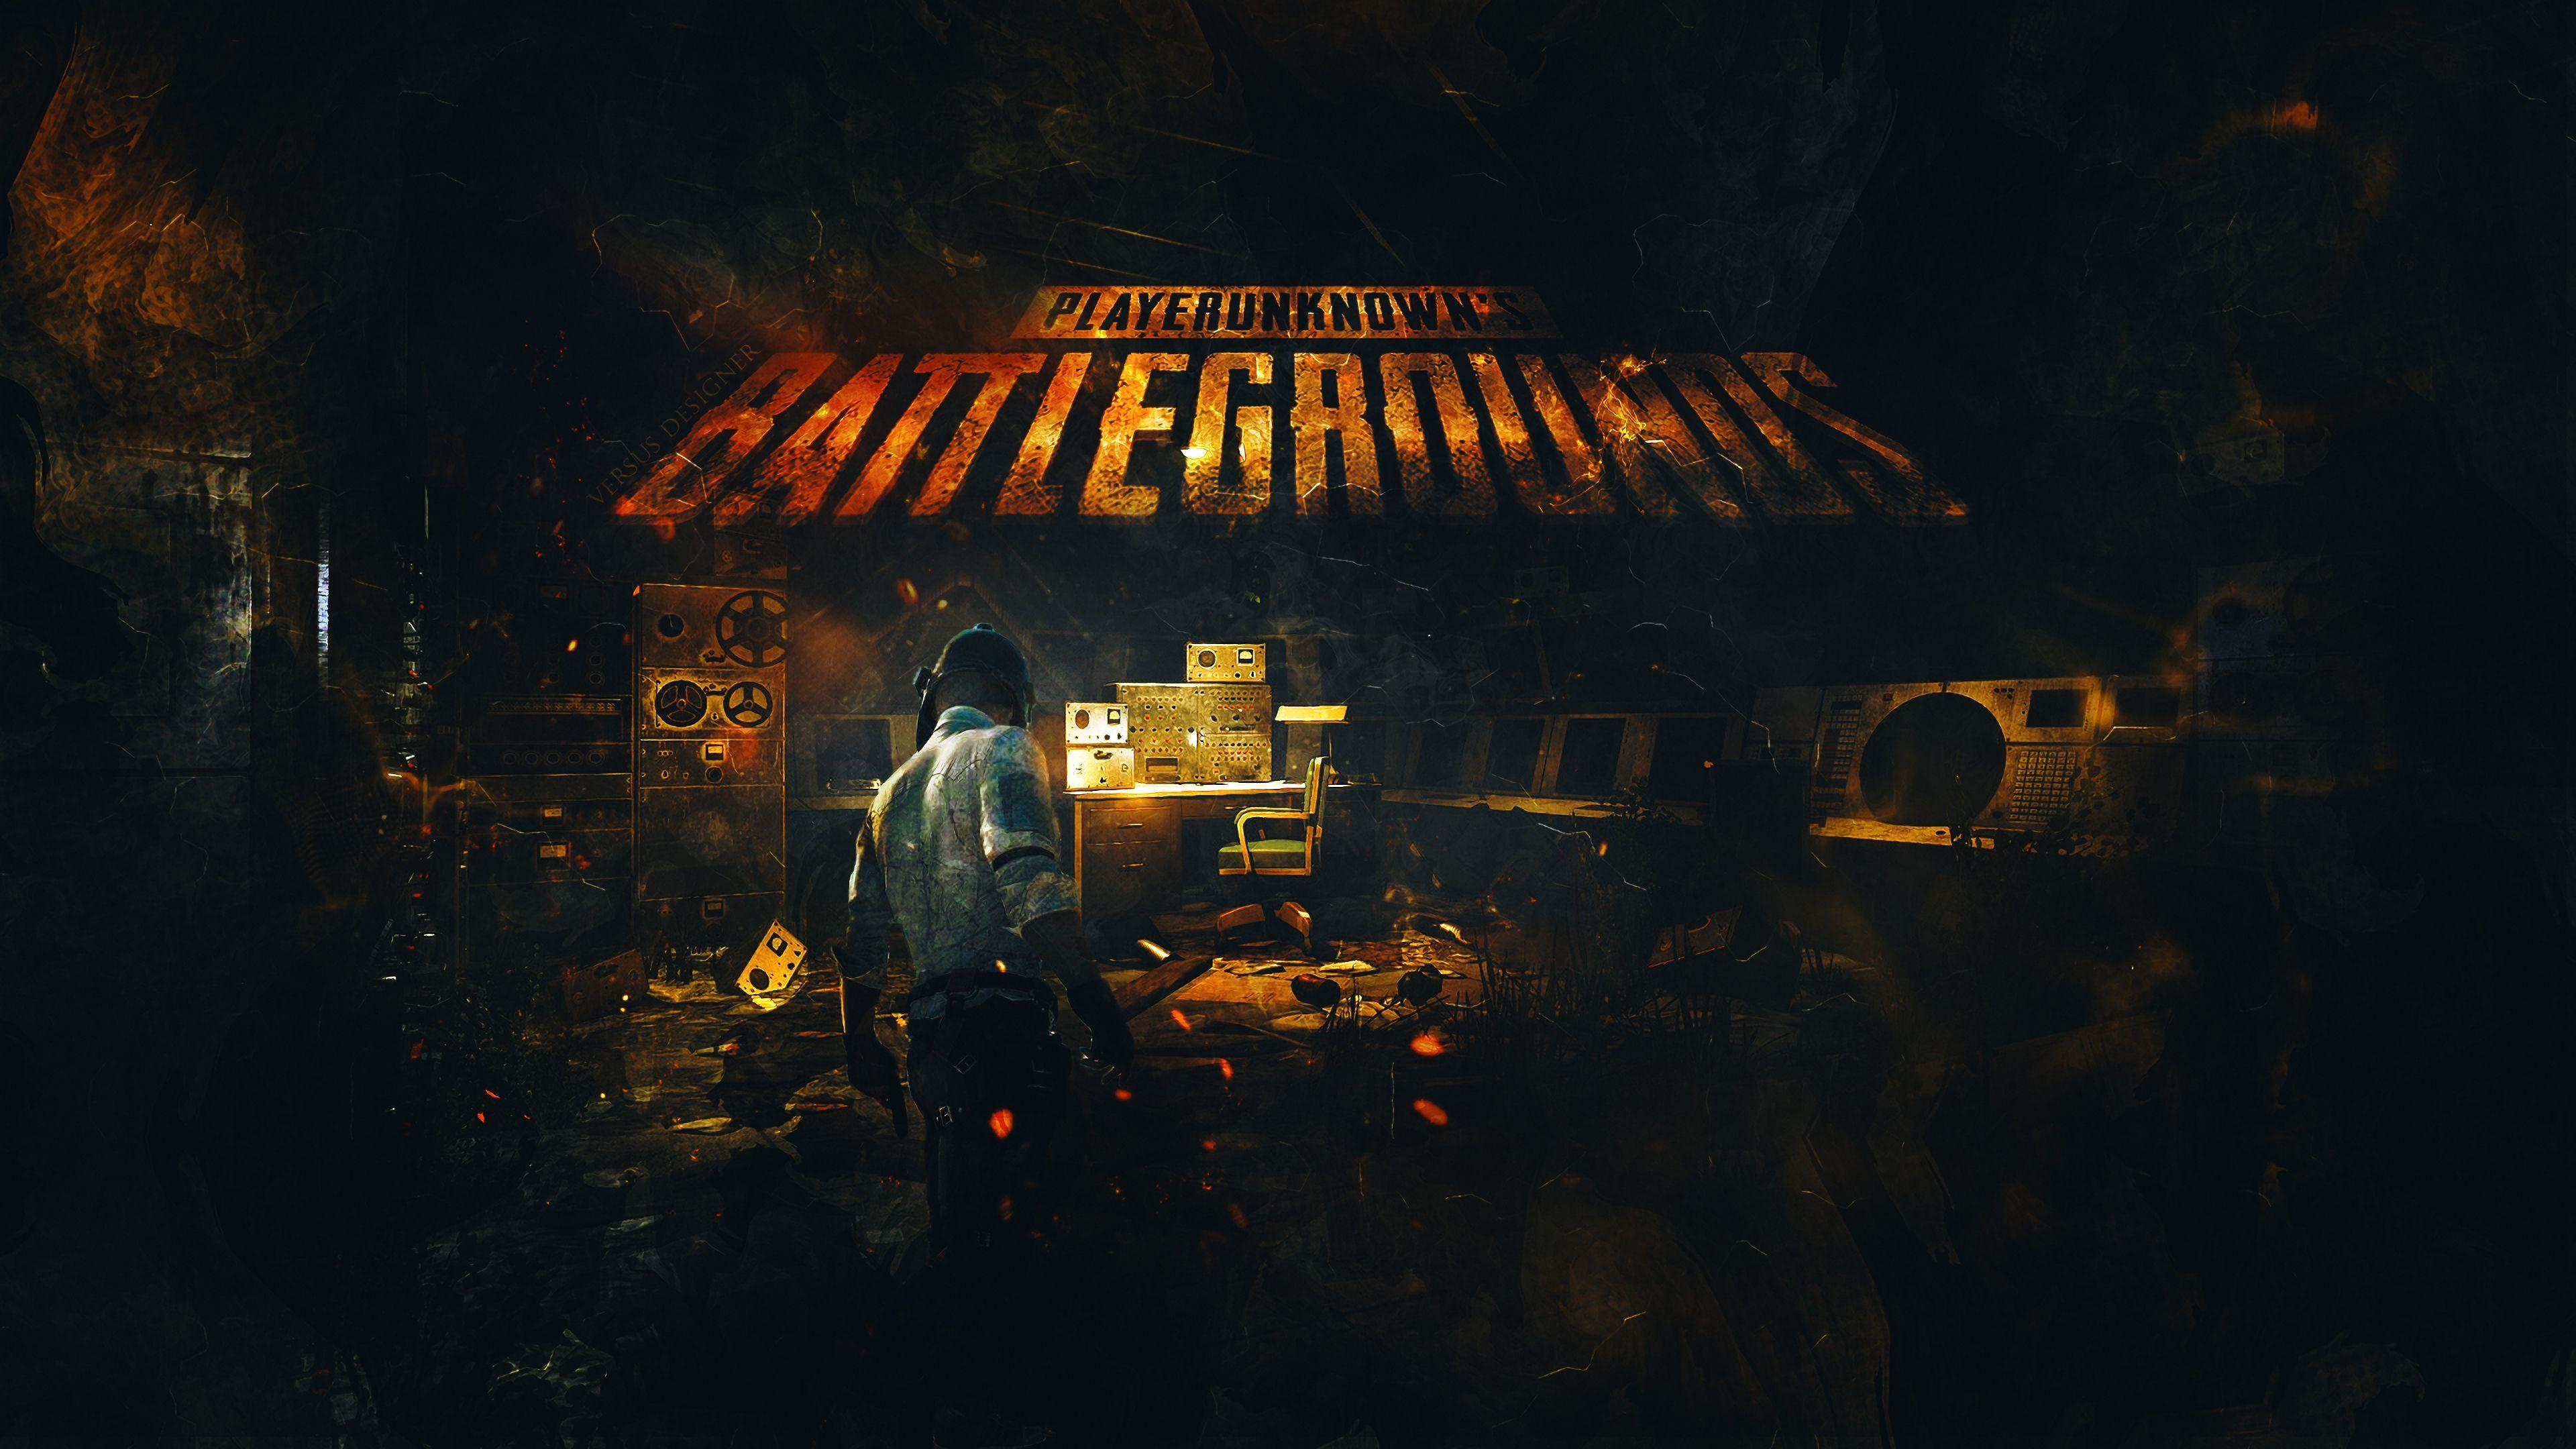 Pubg 4k Wallpapers Wallpaper Cave